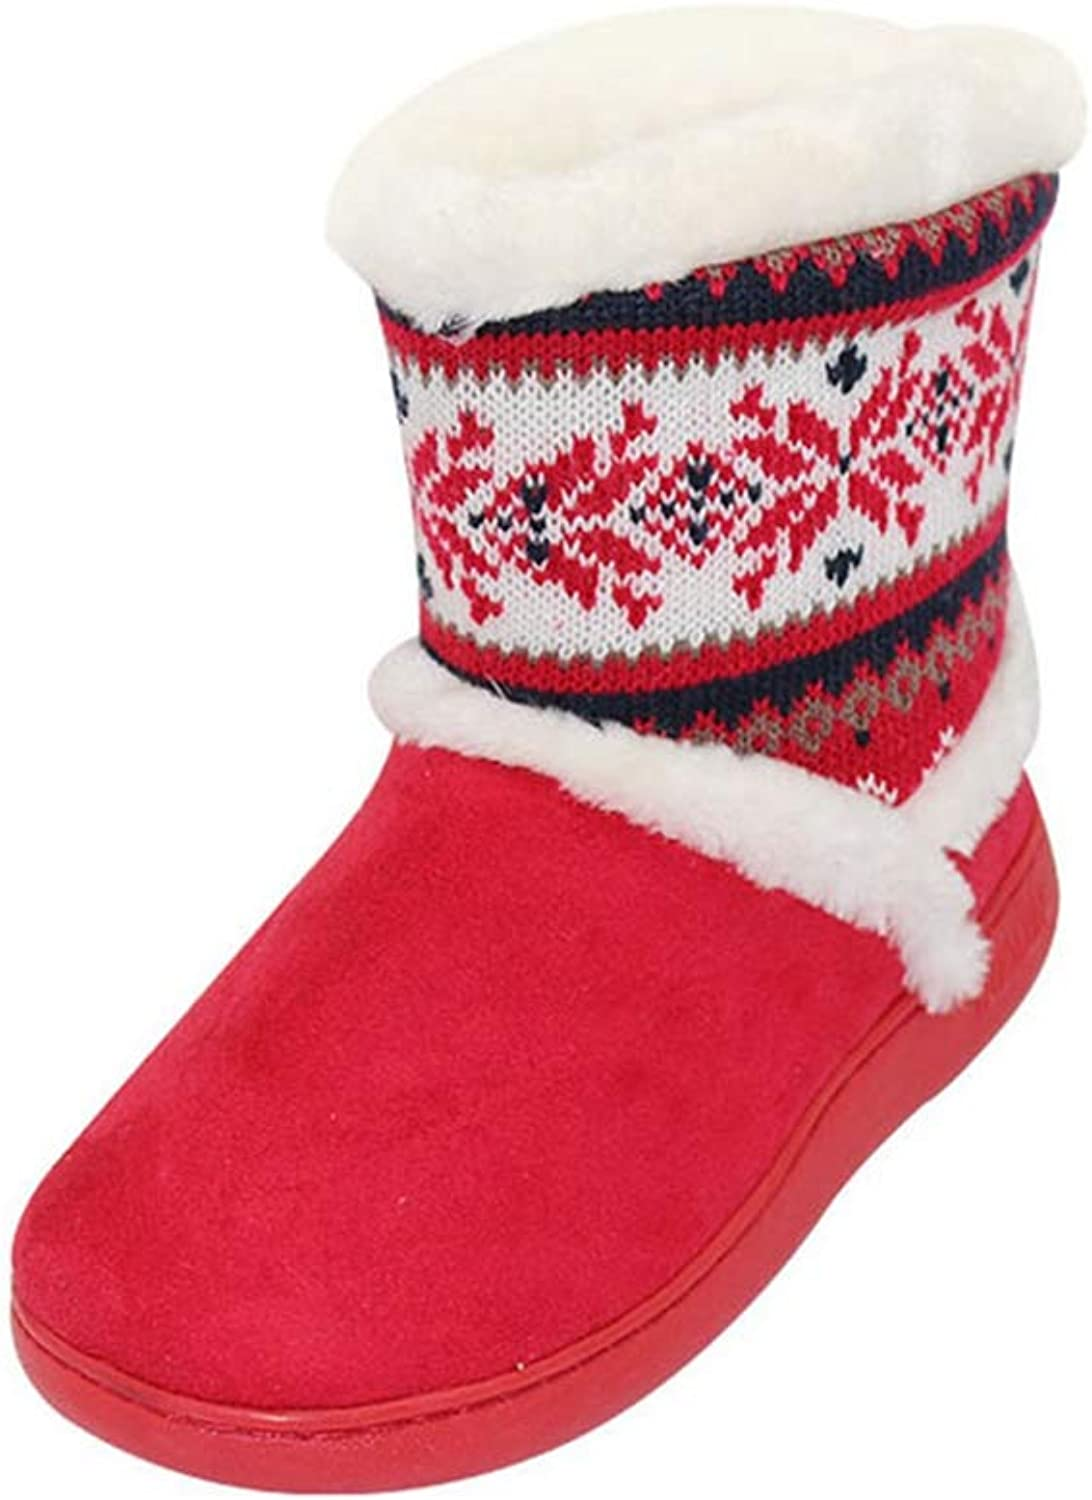 ASO-SLING Women's Memory Foam Sweater Knit Pom Fuzzy Bootie Slippers Soft Breathable Comfy Plush